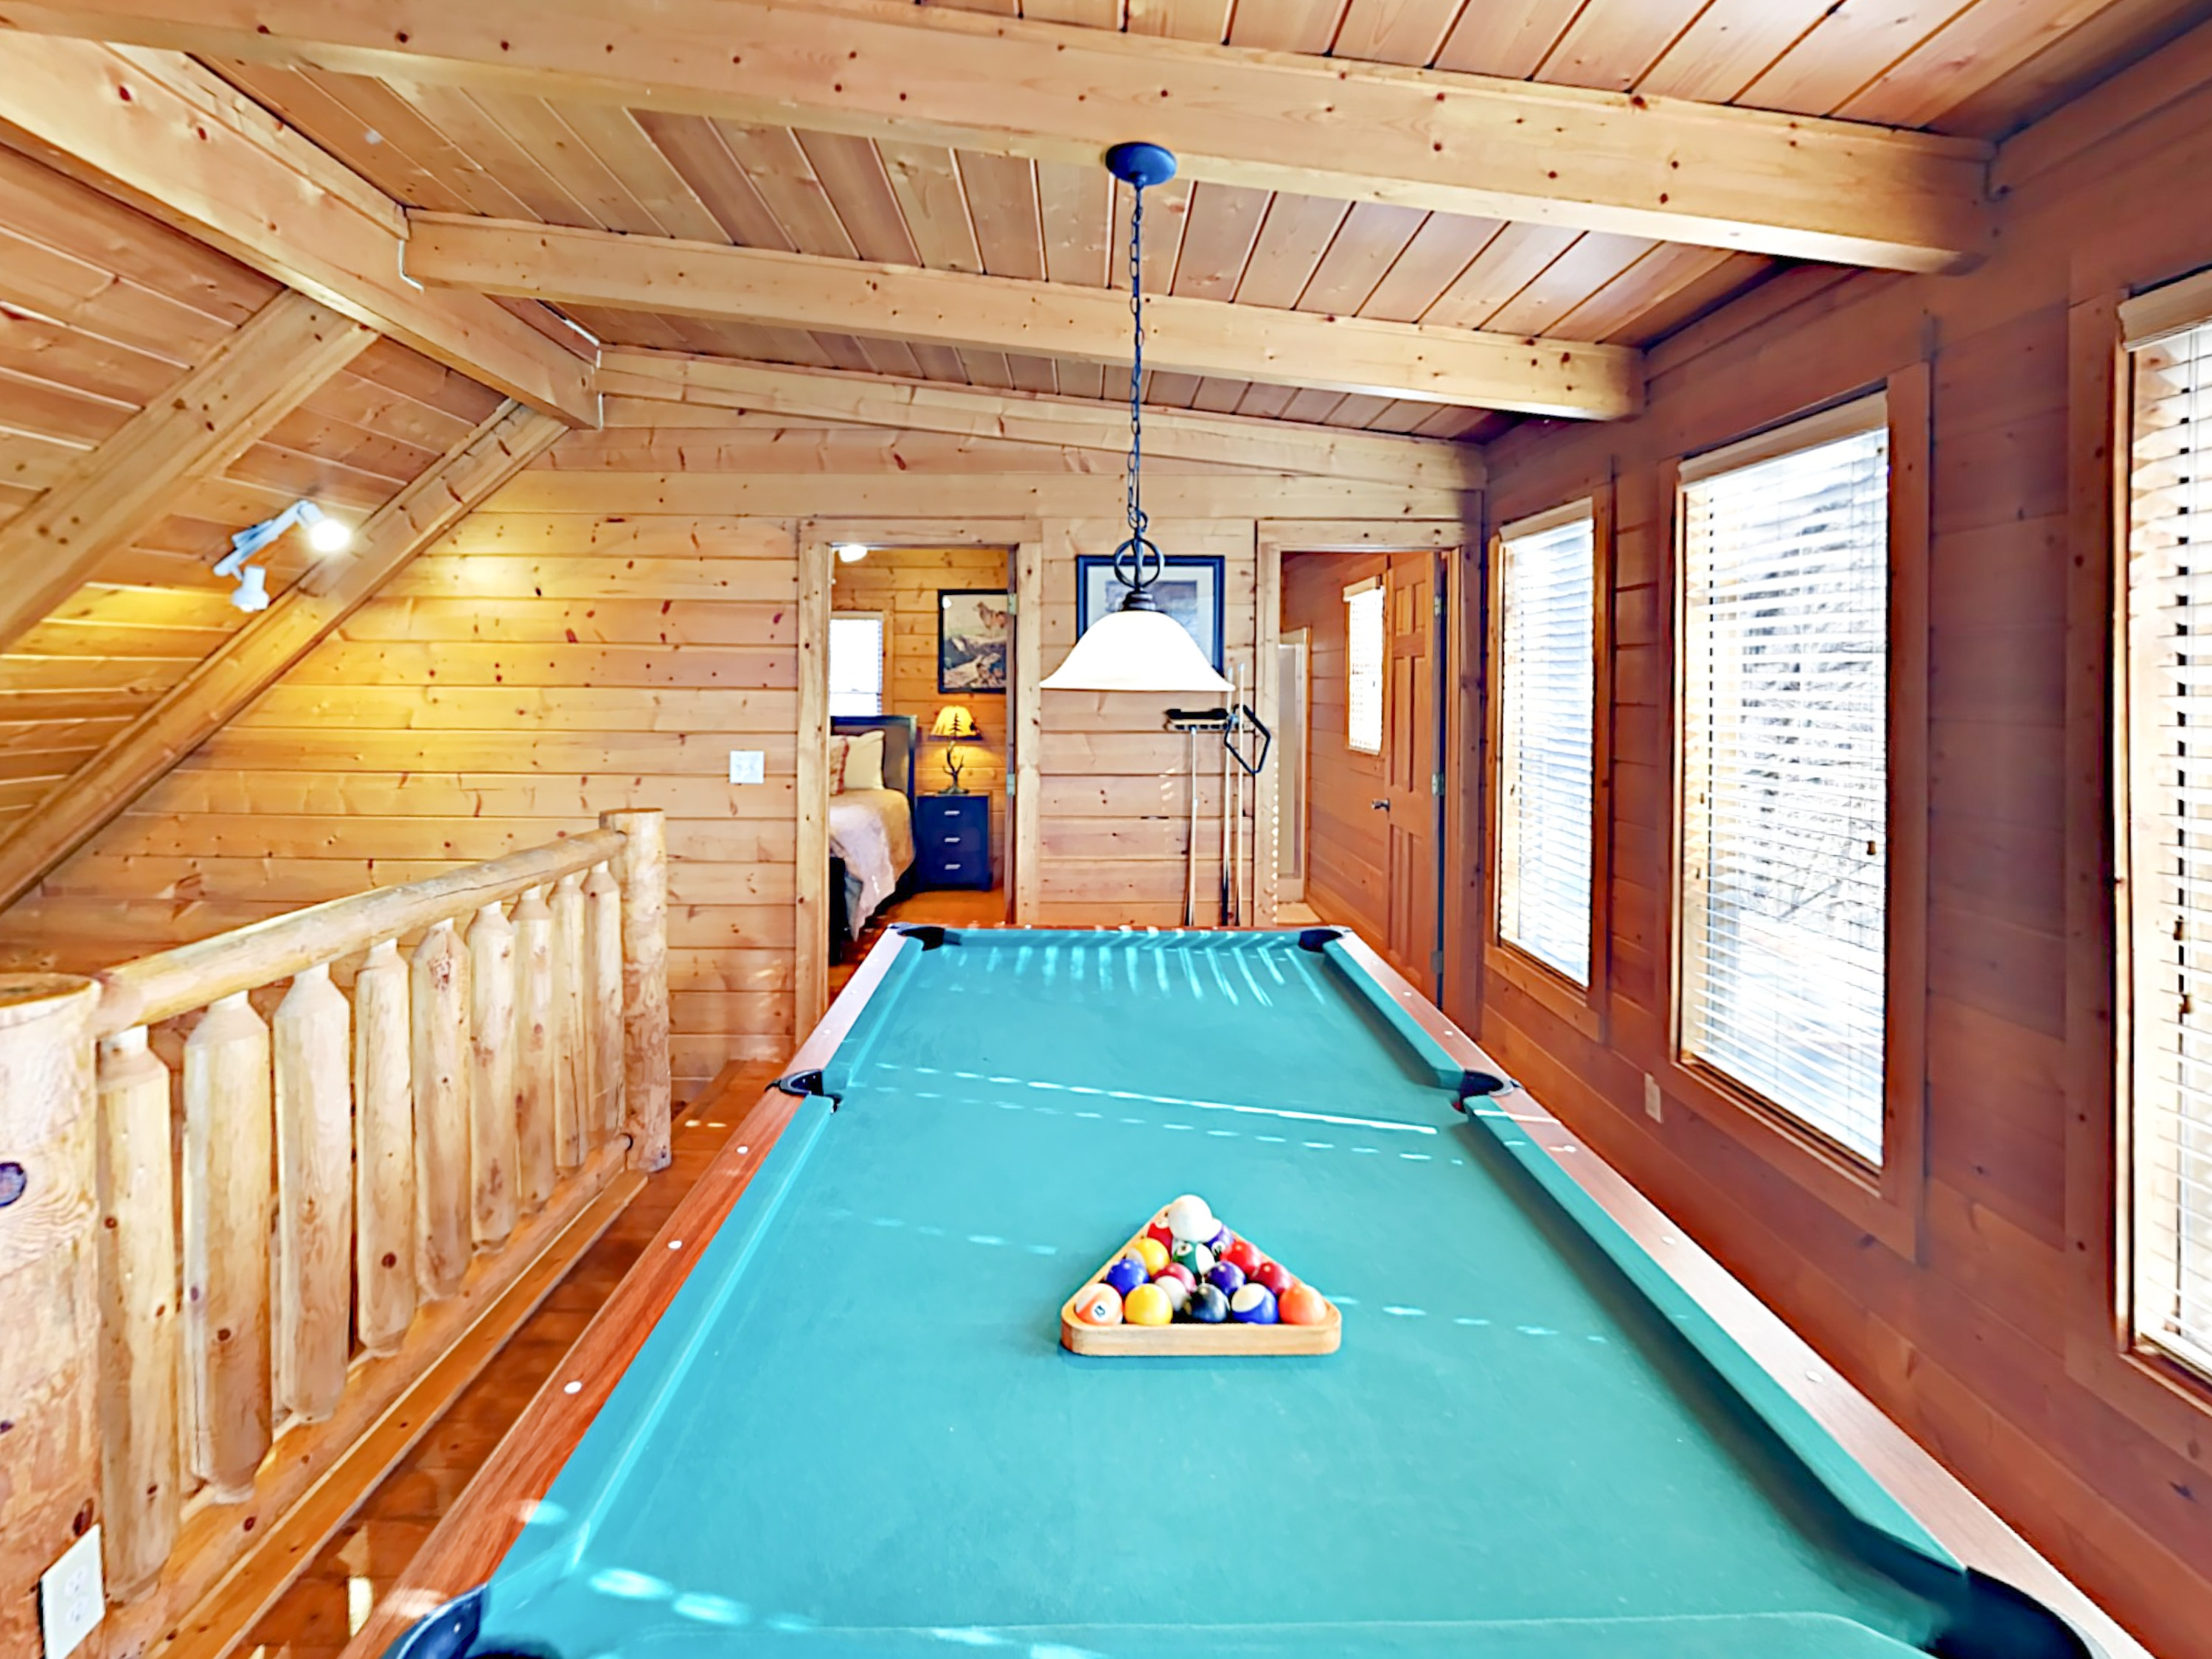 view theater with bedroom forge pigeon room of inspirational located cabins cabin indoor majestic pools collection gatlinburg and lodge pool in awesome